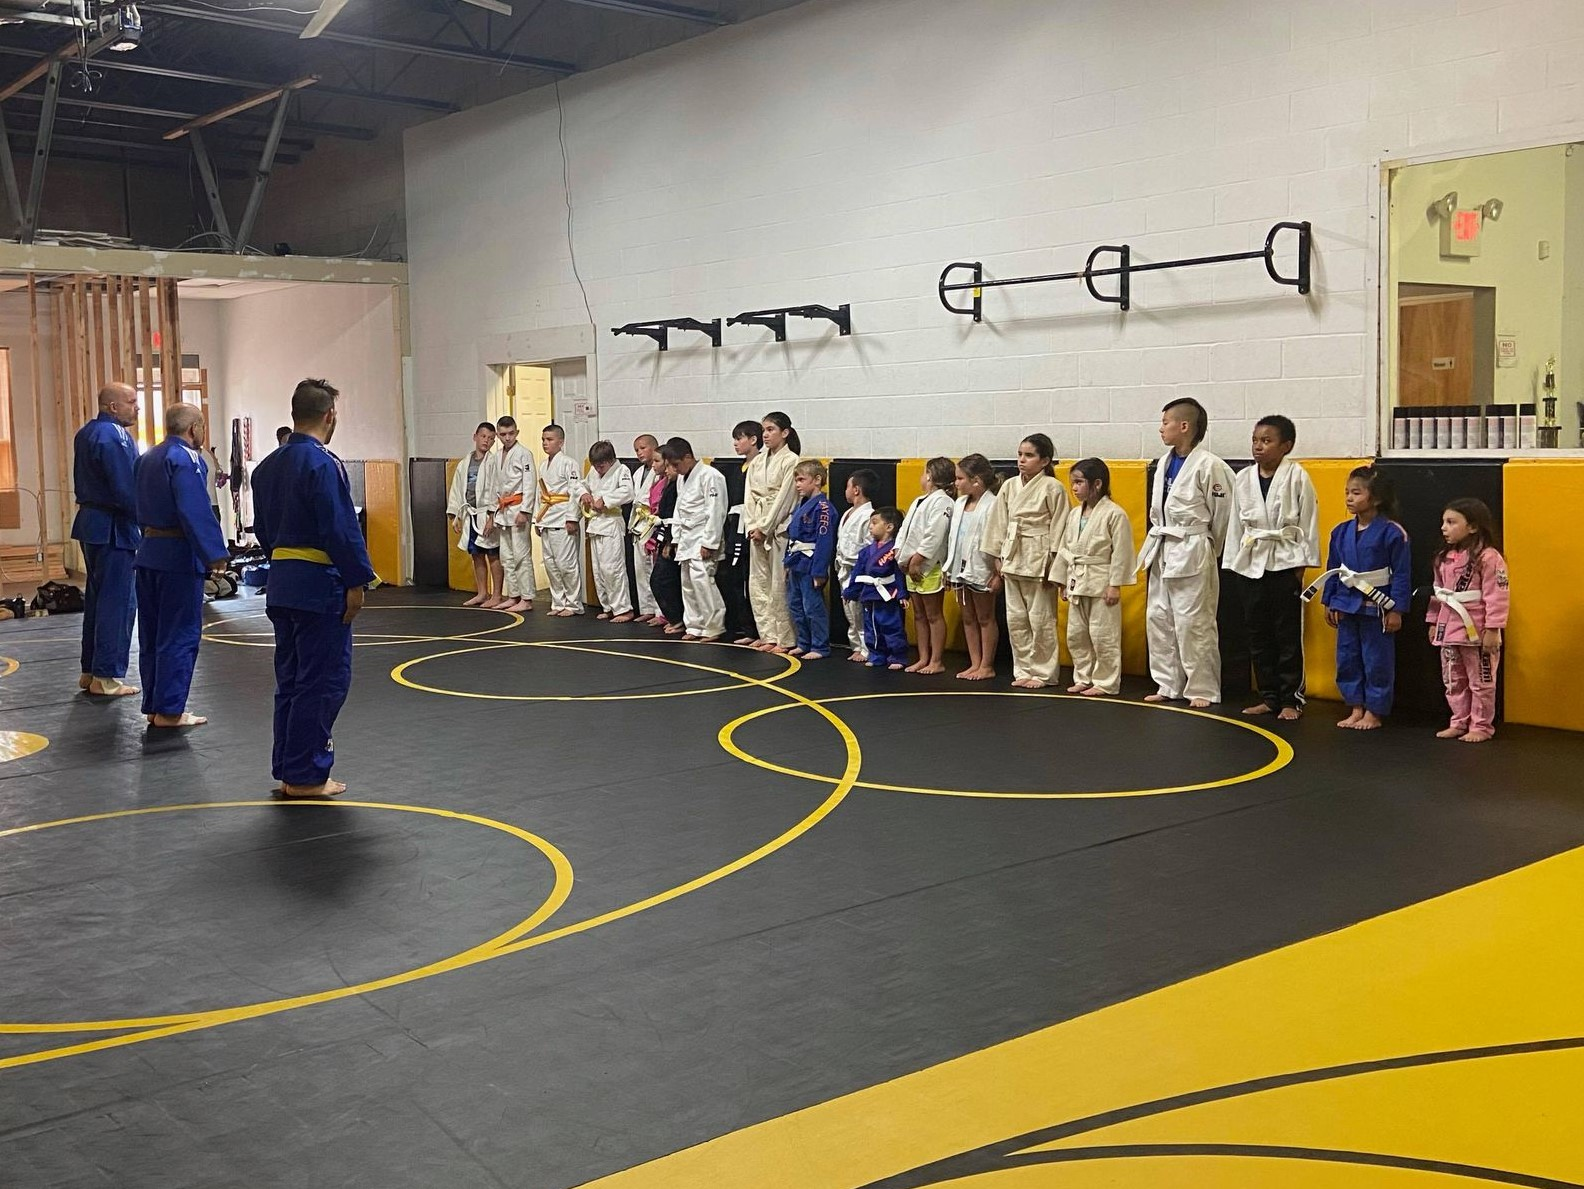 Lining up for a kids judo competition